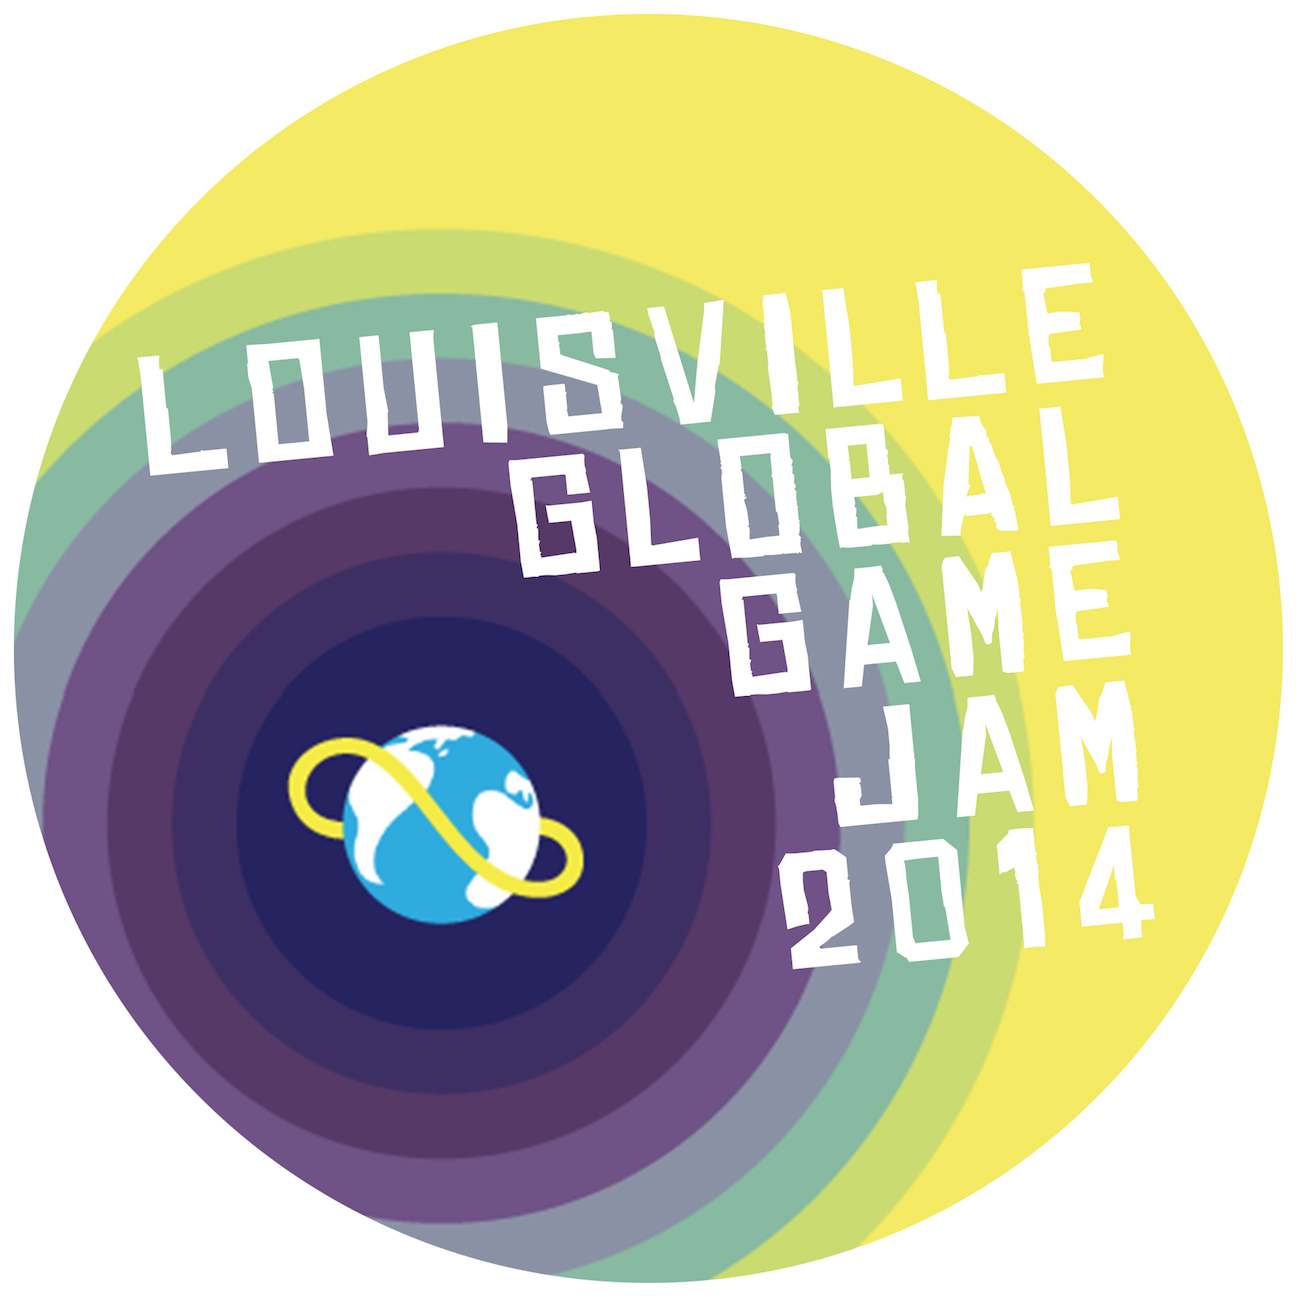 Louisville Global game Jam 2014 louisvilleglobalgamejam.github.io